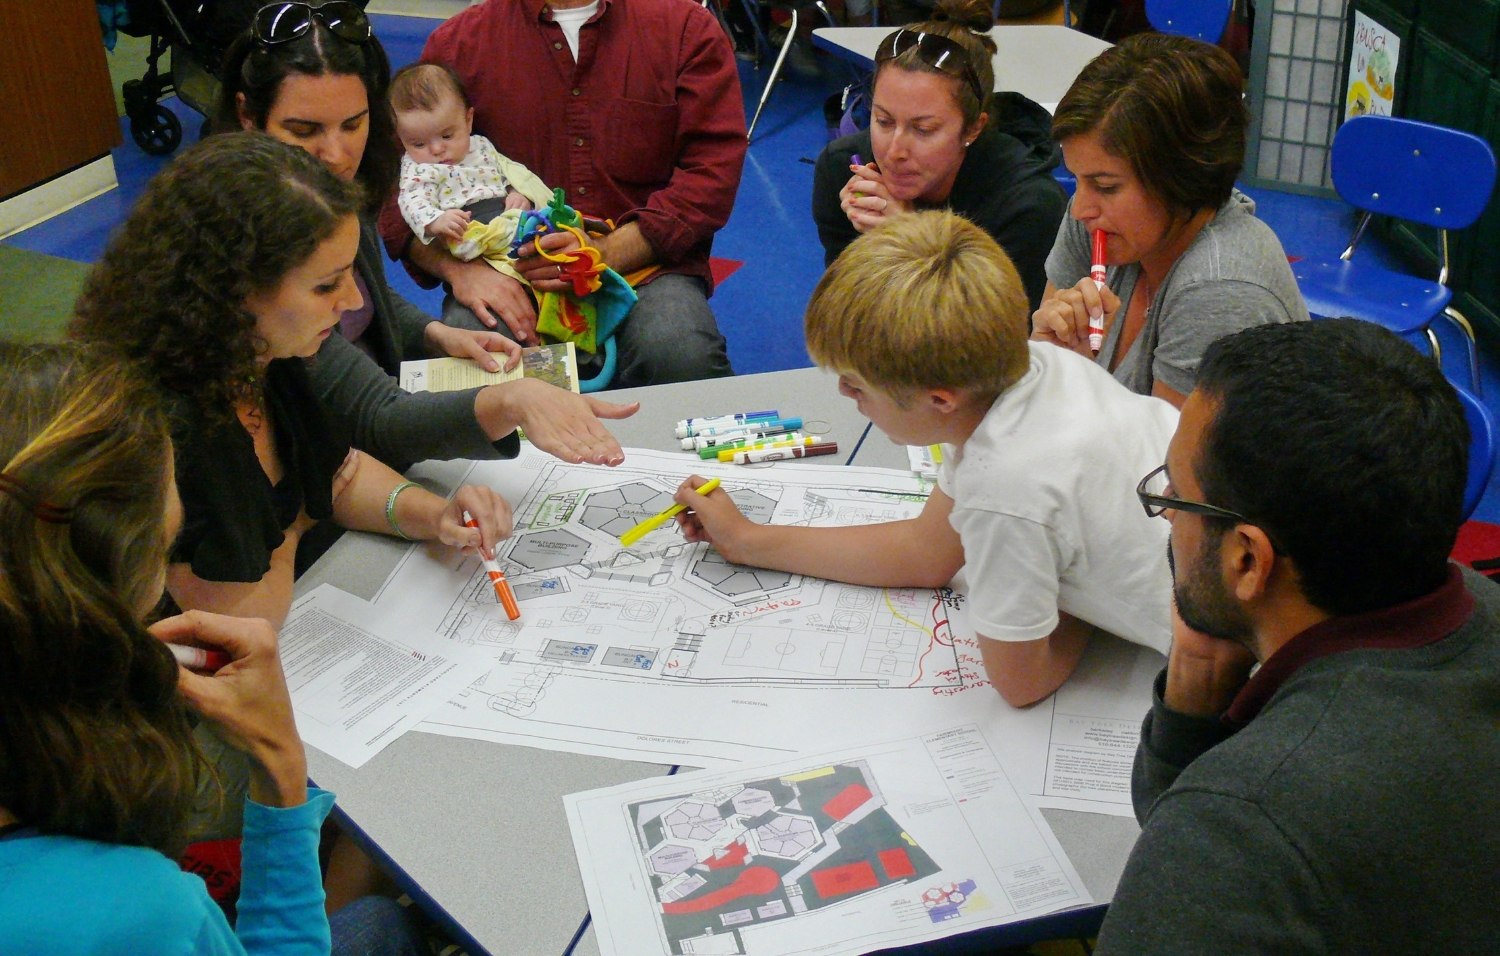 Community meeting for masterplanning process